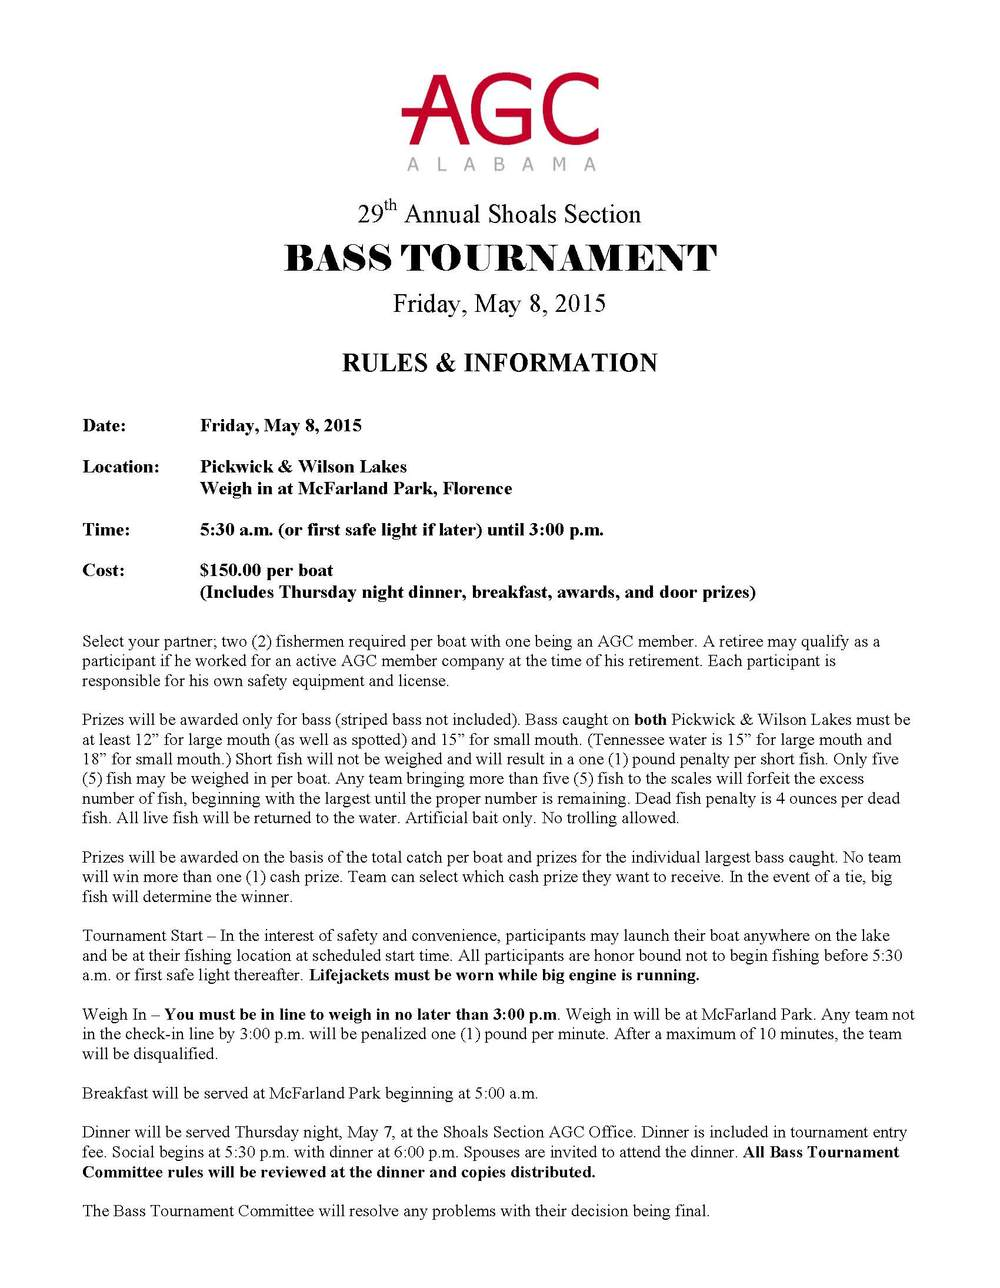 2015 Bass Tournament Rules_Page_1.jpg